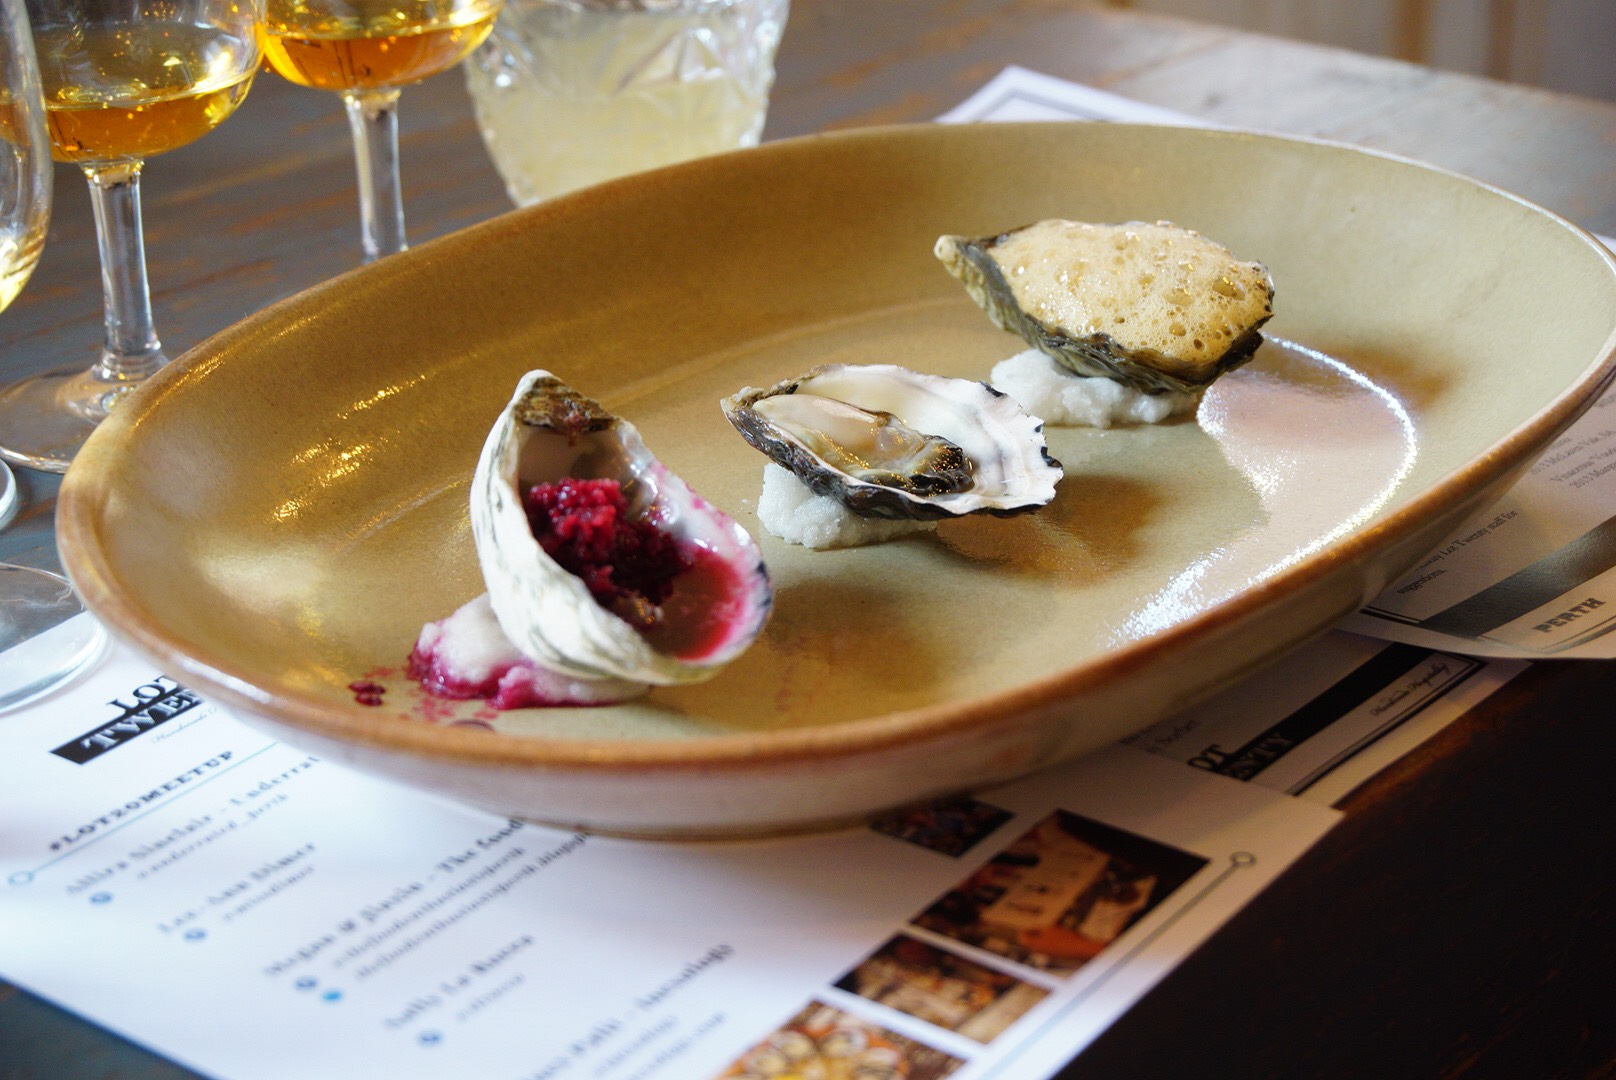 Oysters with beetroot granita, natural and espresso foam